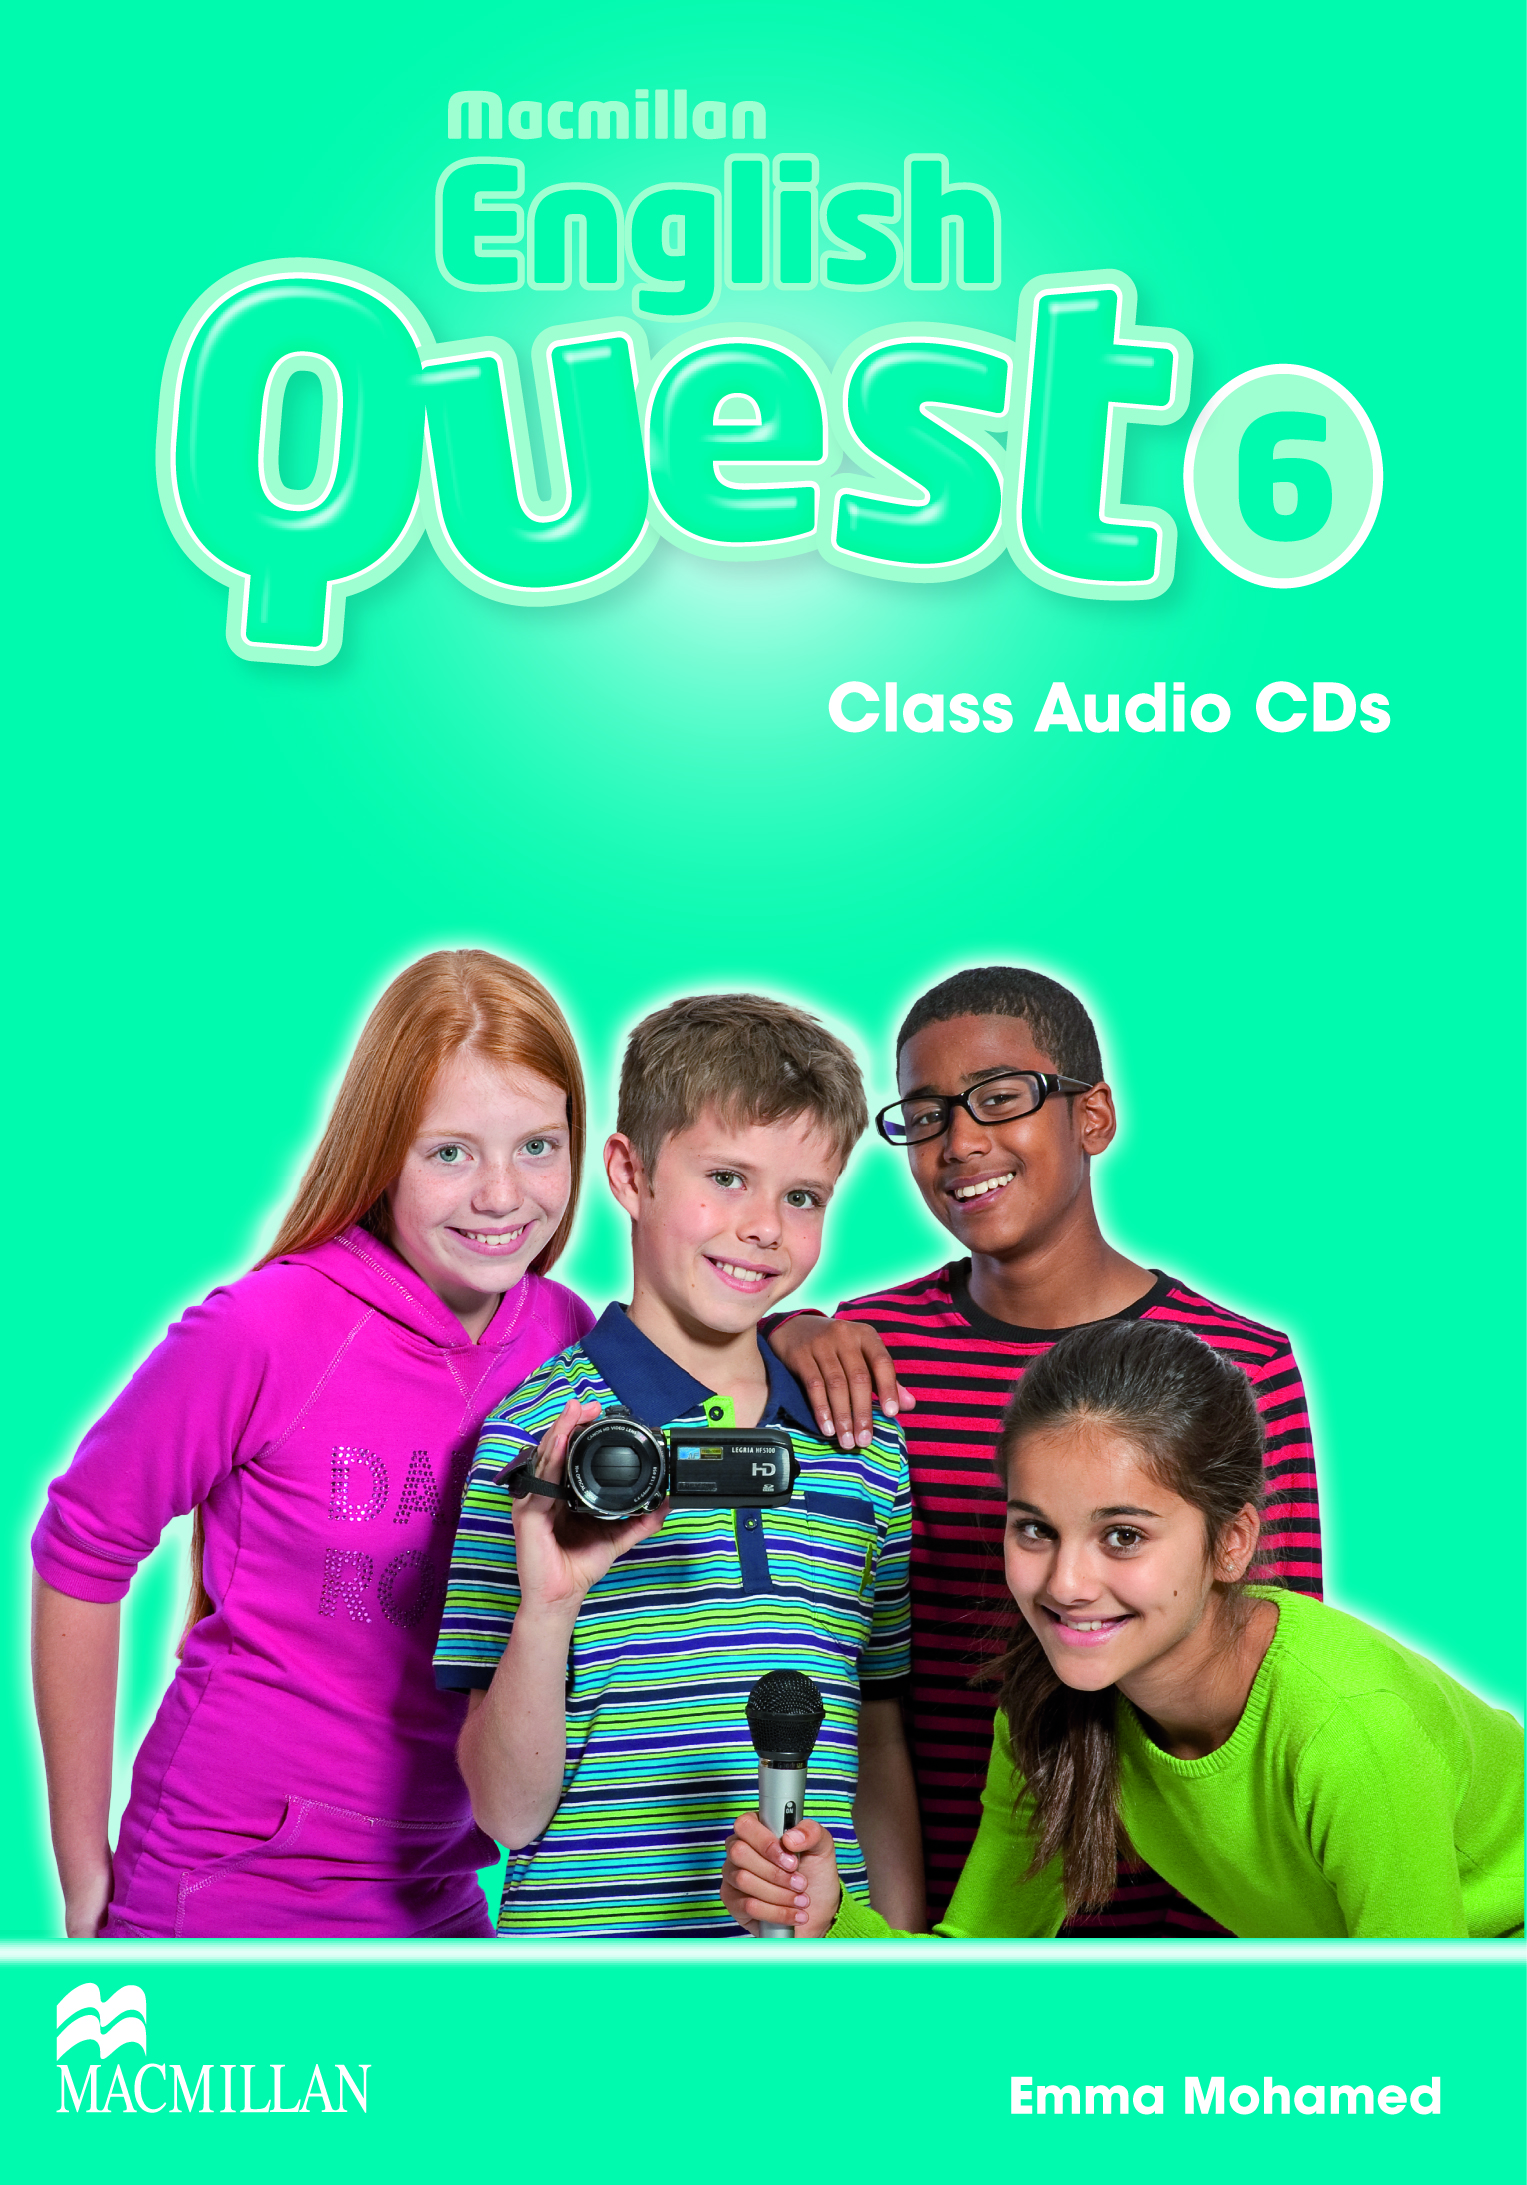 Macmillan English Quest 6 Class Audio CDs